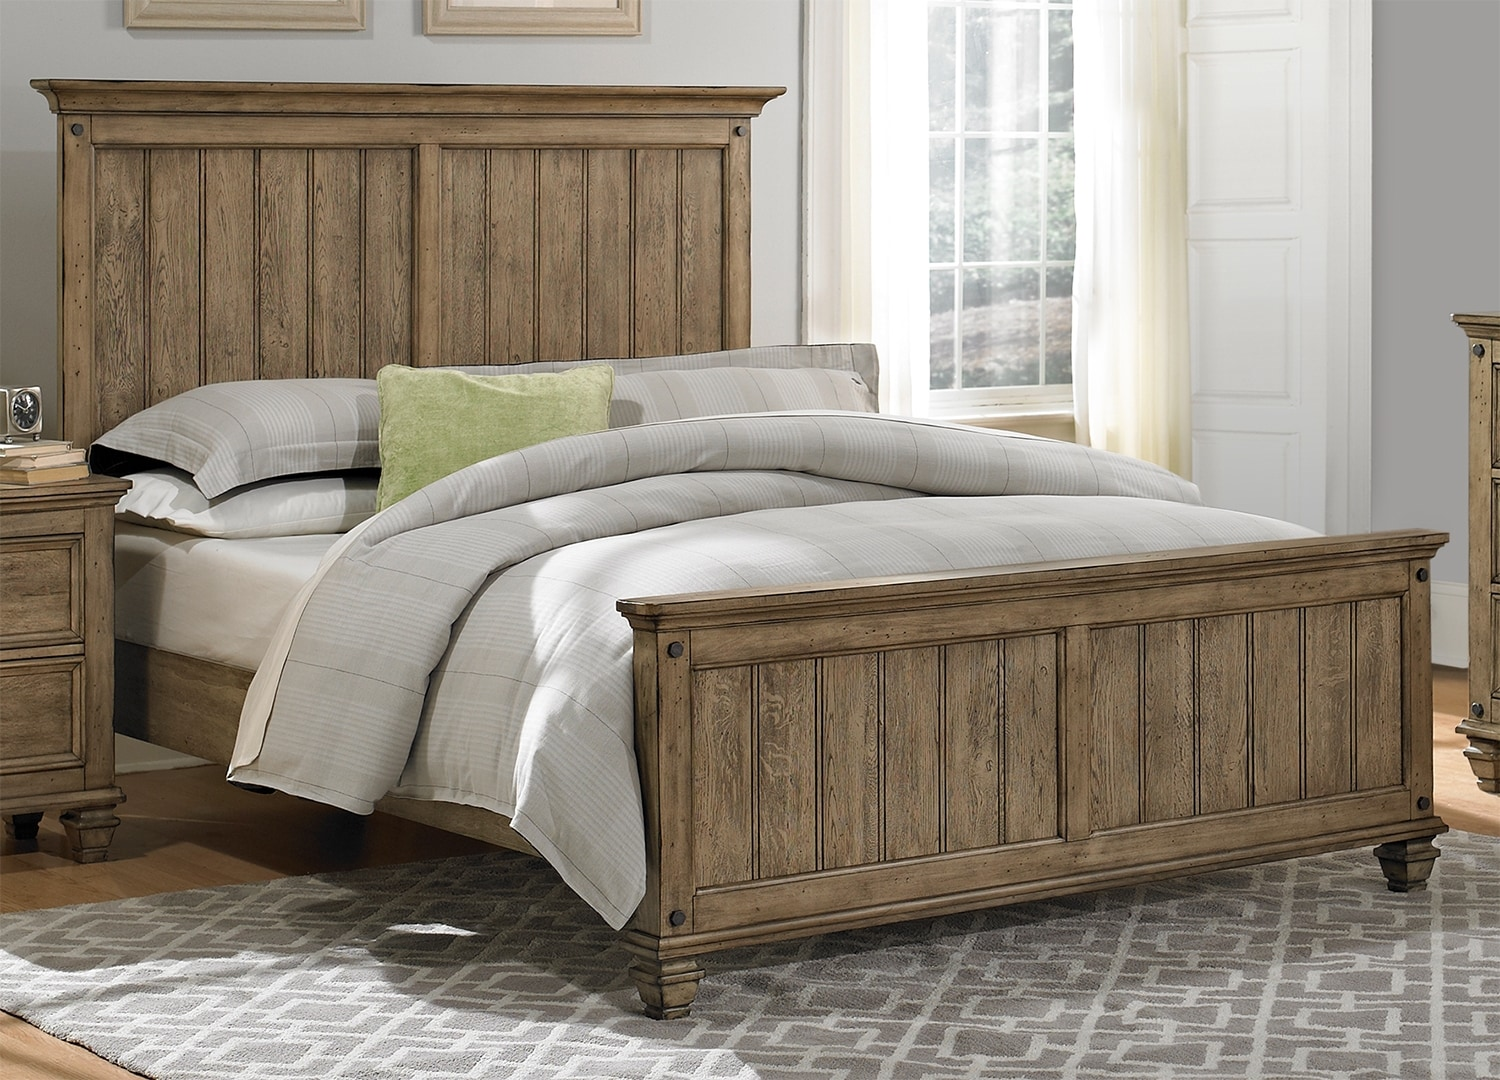 Hartwell Queen Bed - Brown Driftwood